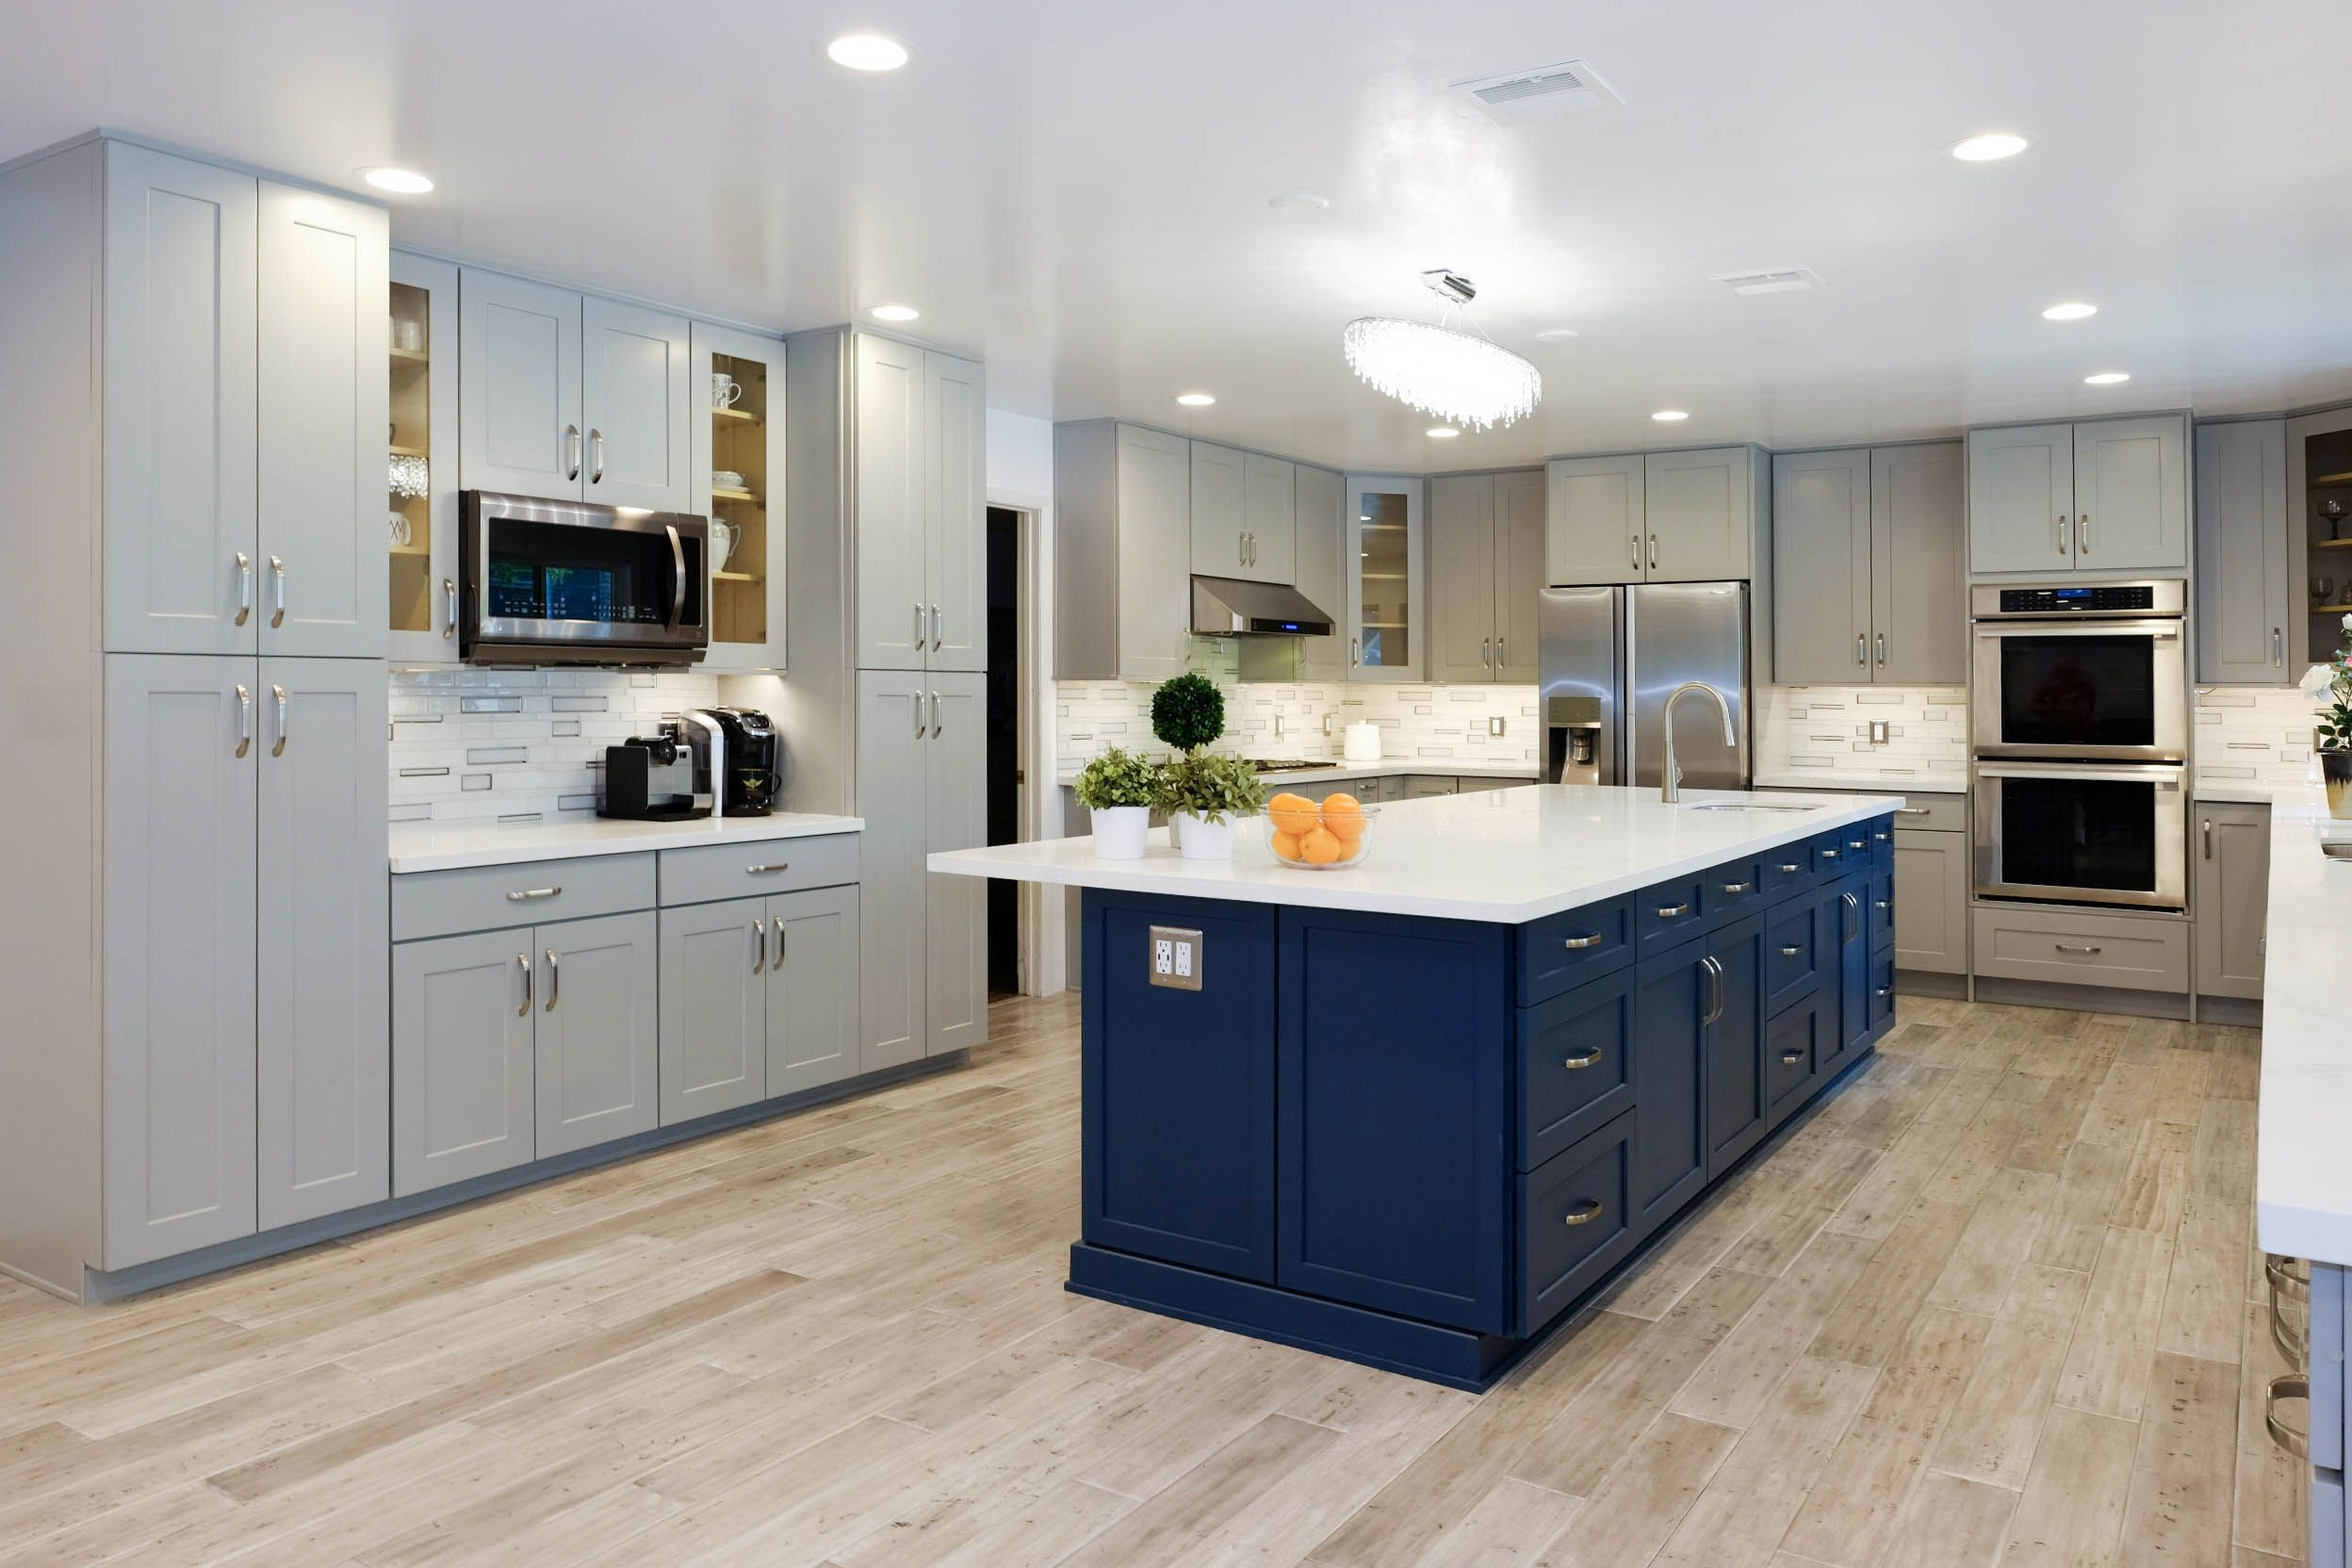 Large Expansive Kitchen With Grey Shaker Cabinets In Chatsworth Ca Custom Blue Island Was Ad Kitchen Inspirations Kitchen Design Contemporary Kitchen Design